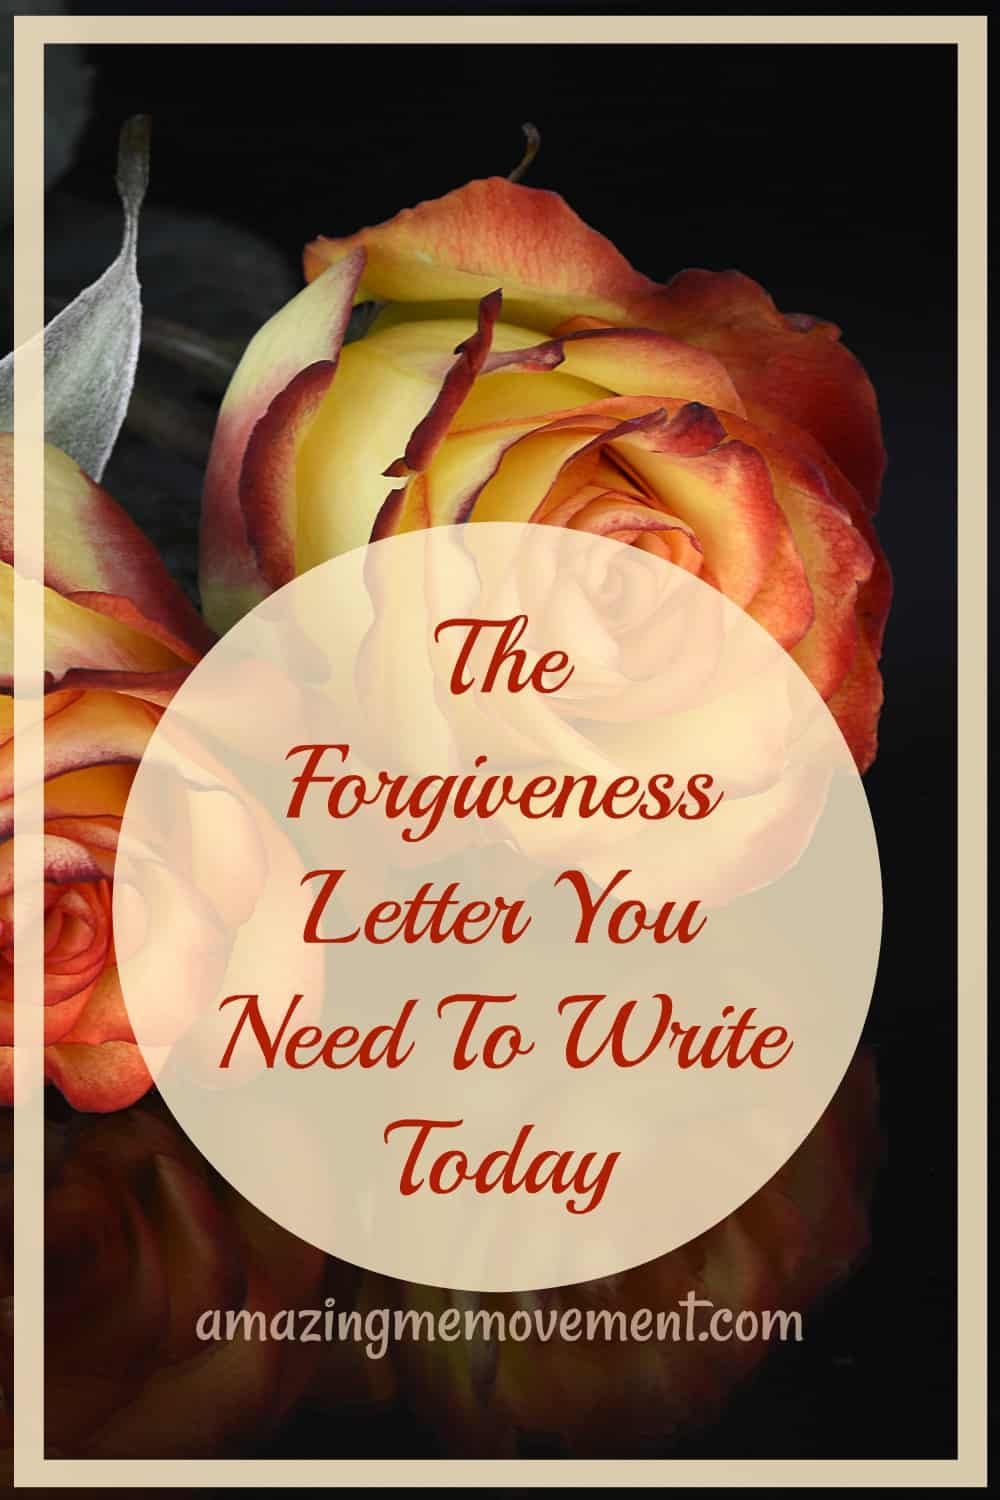 The Forgiveness Letter You Need To Write